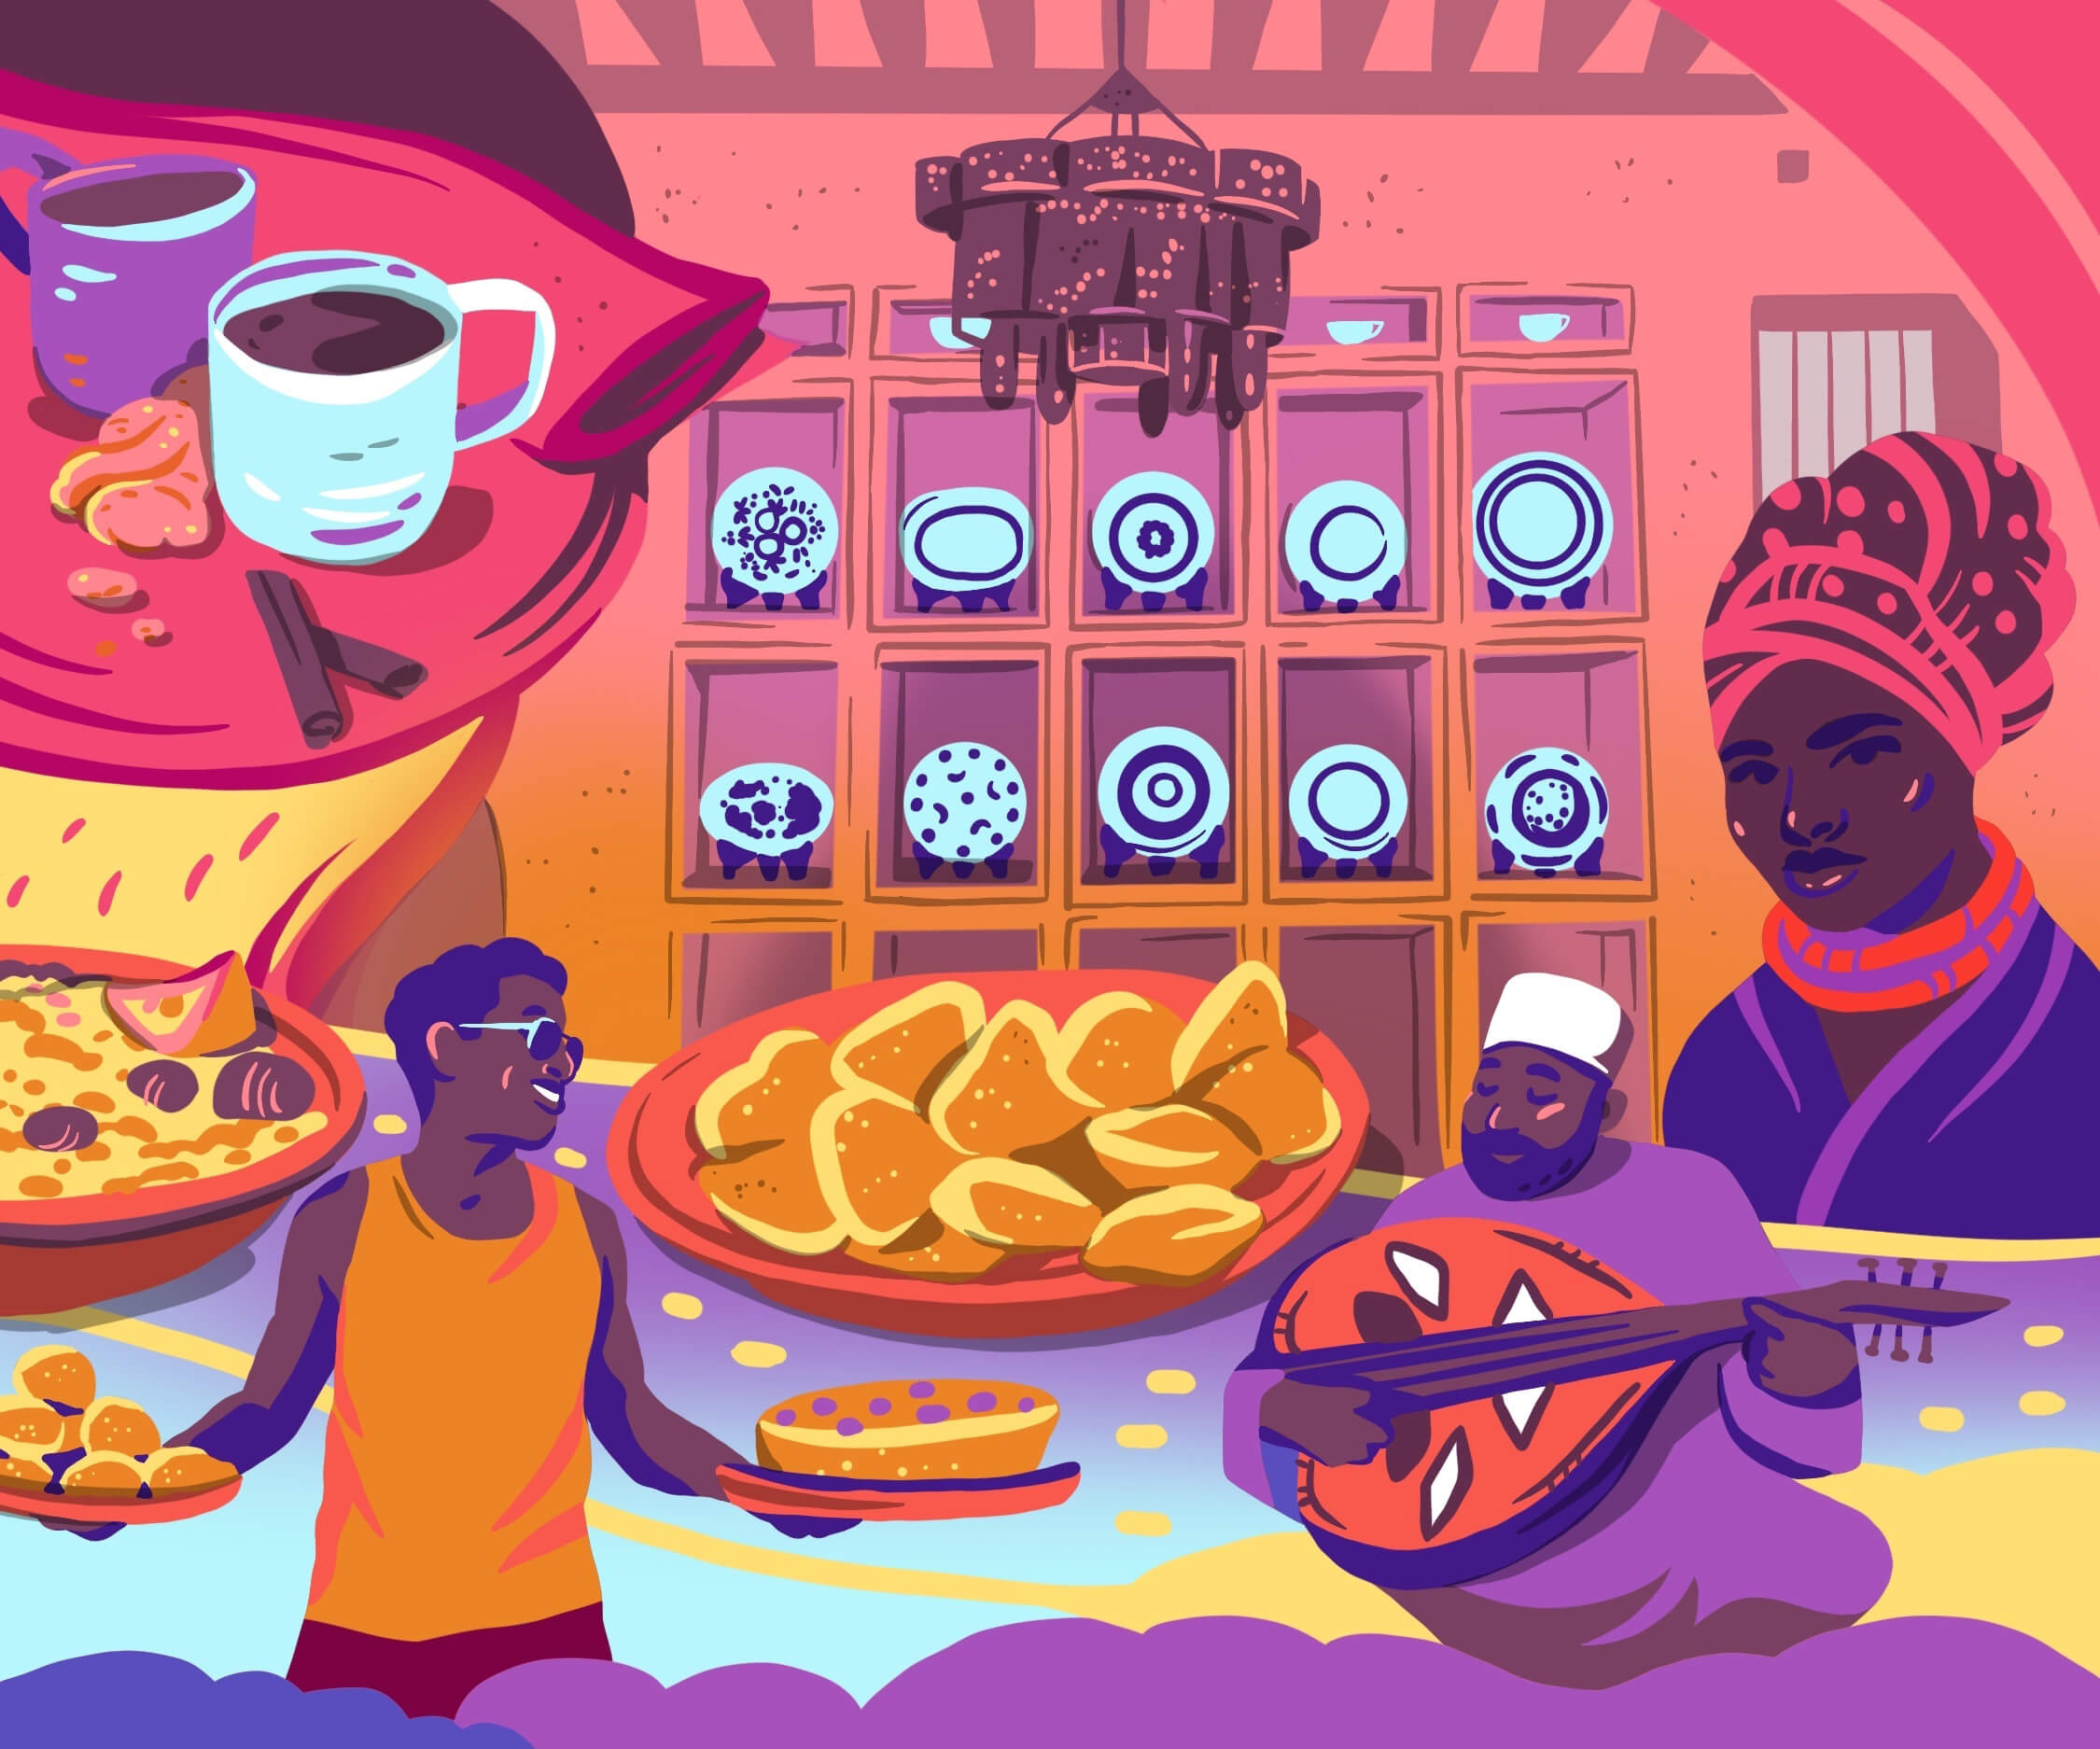 Learn Swahili with Drops in fun, 5-minute learning sessions.